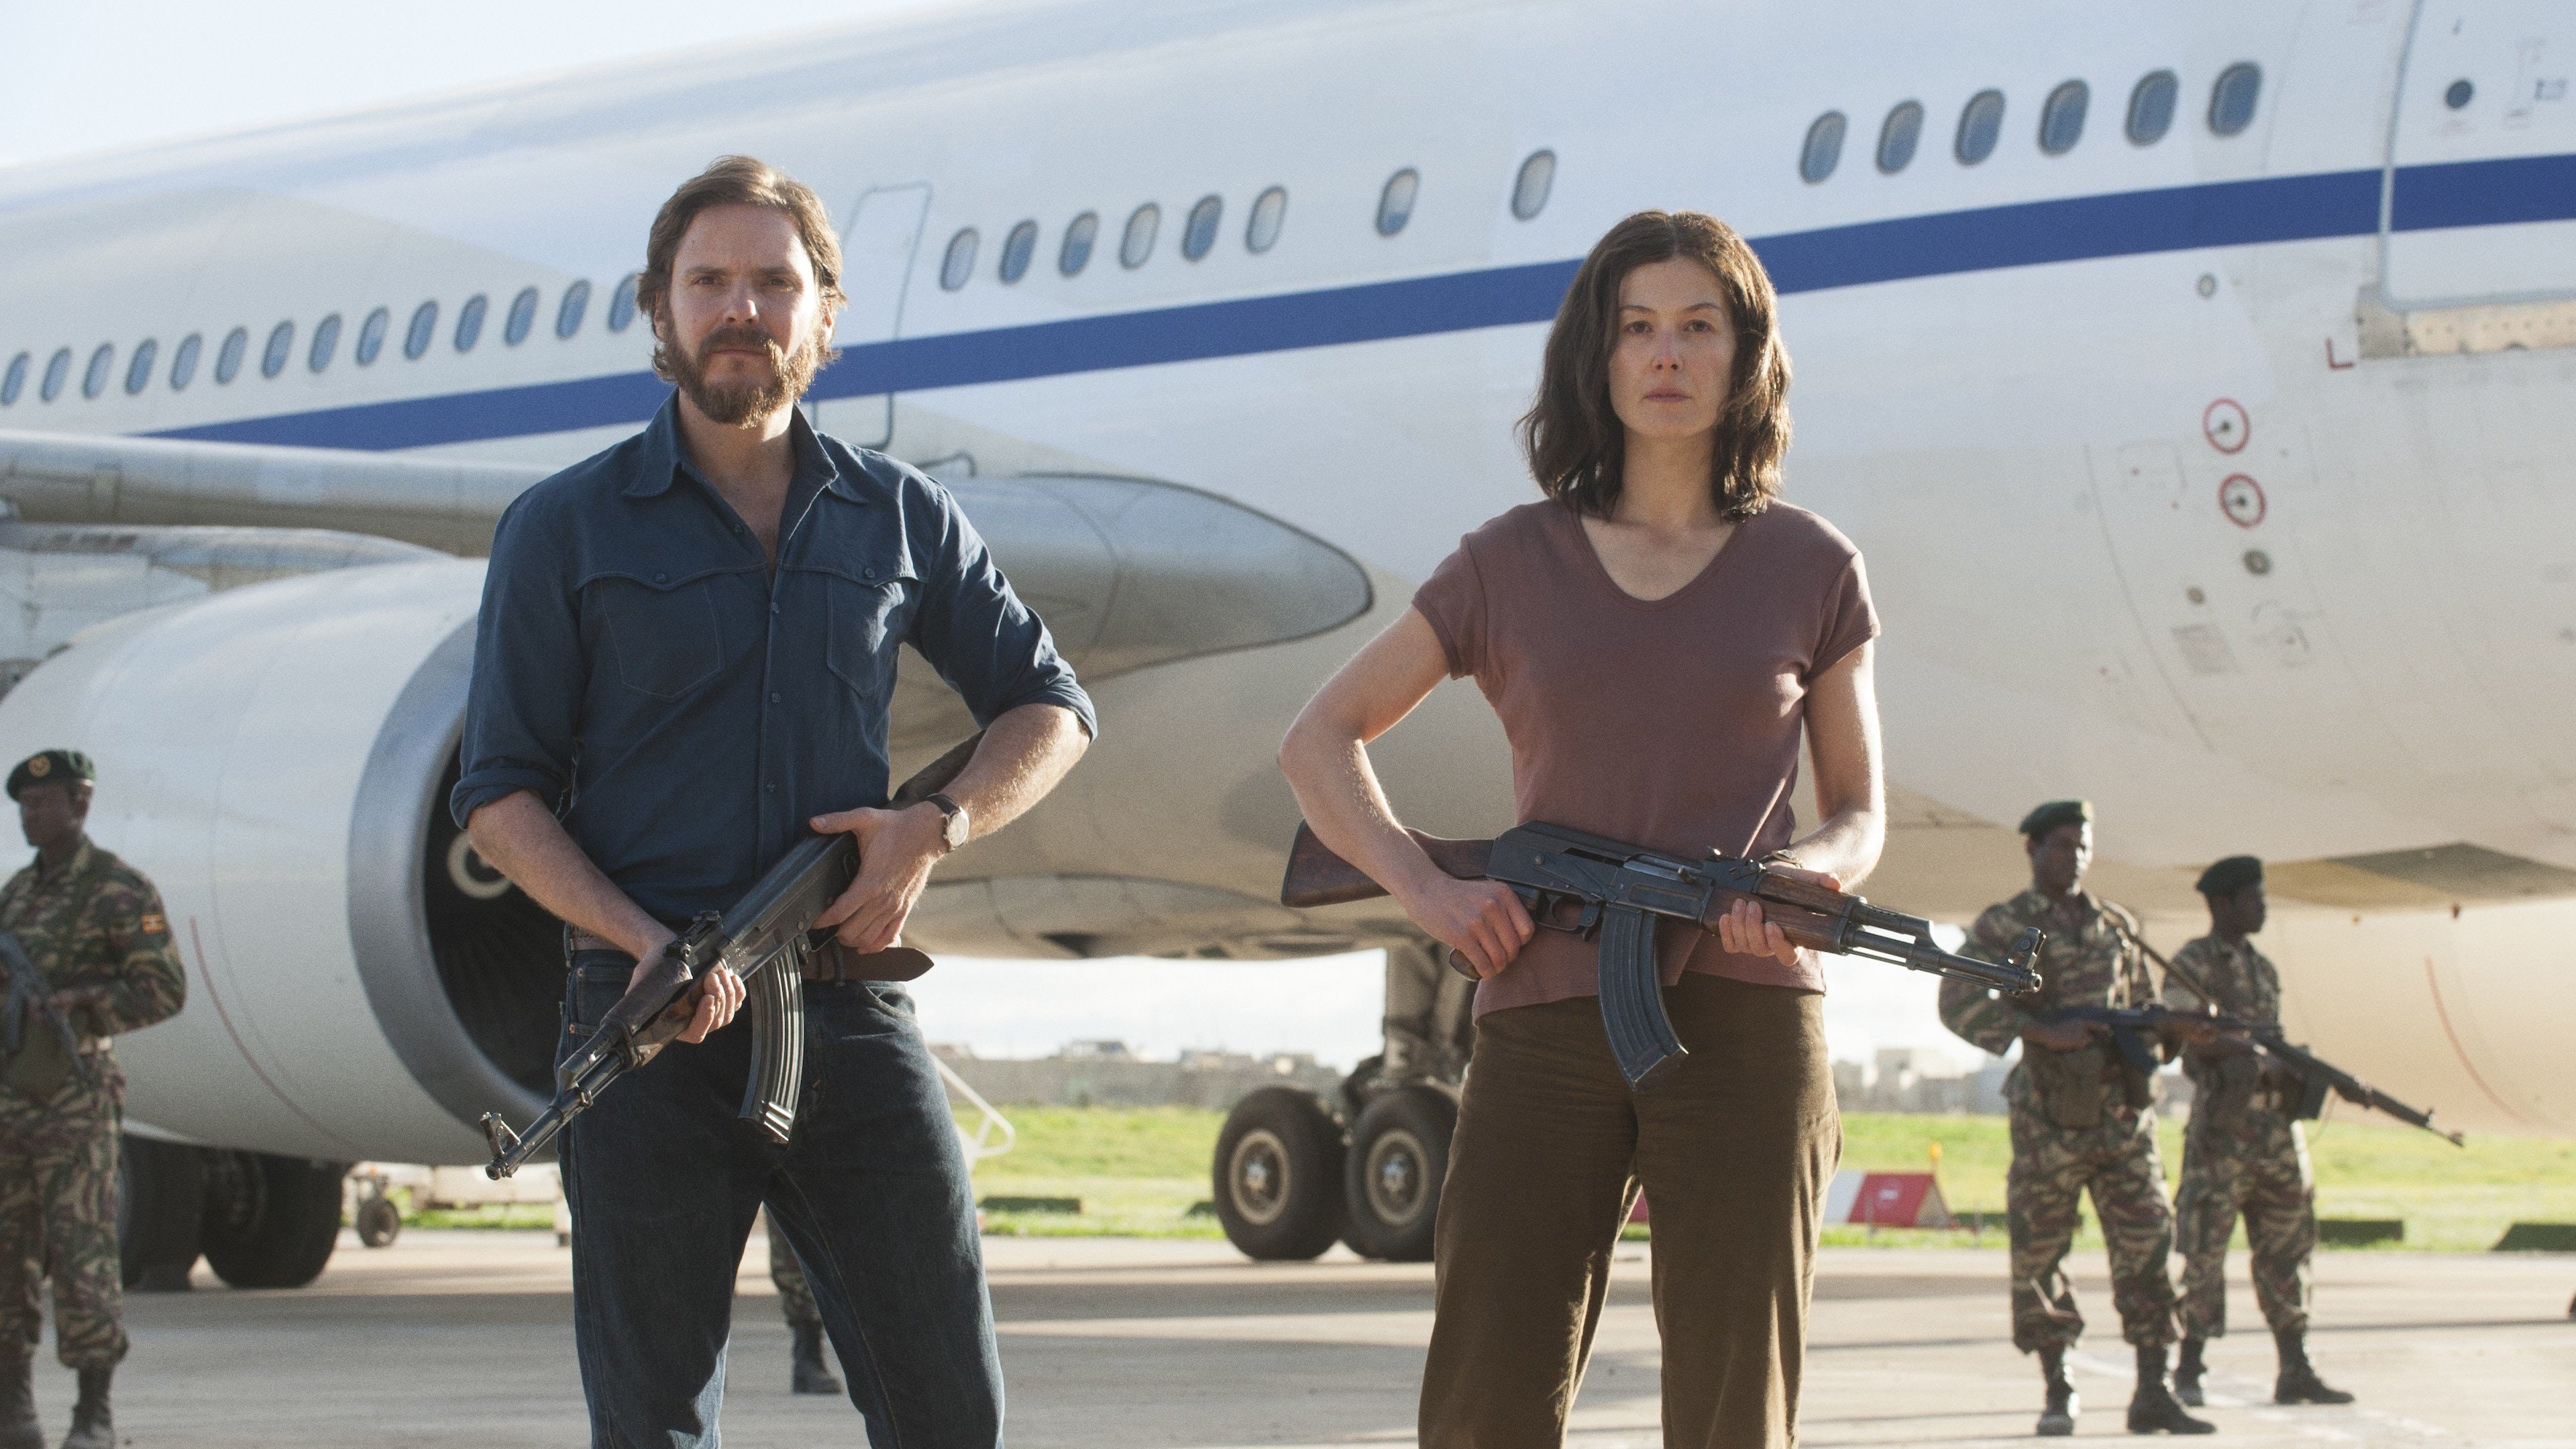 7 Days in Entebbe Soundtrack